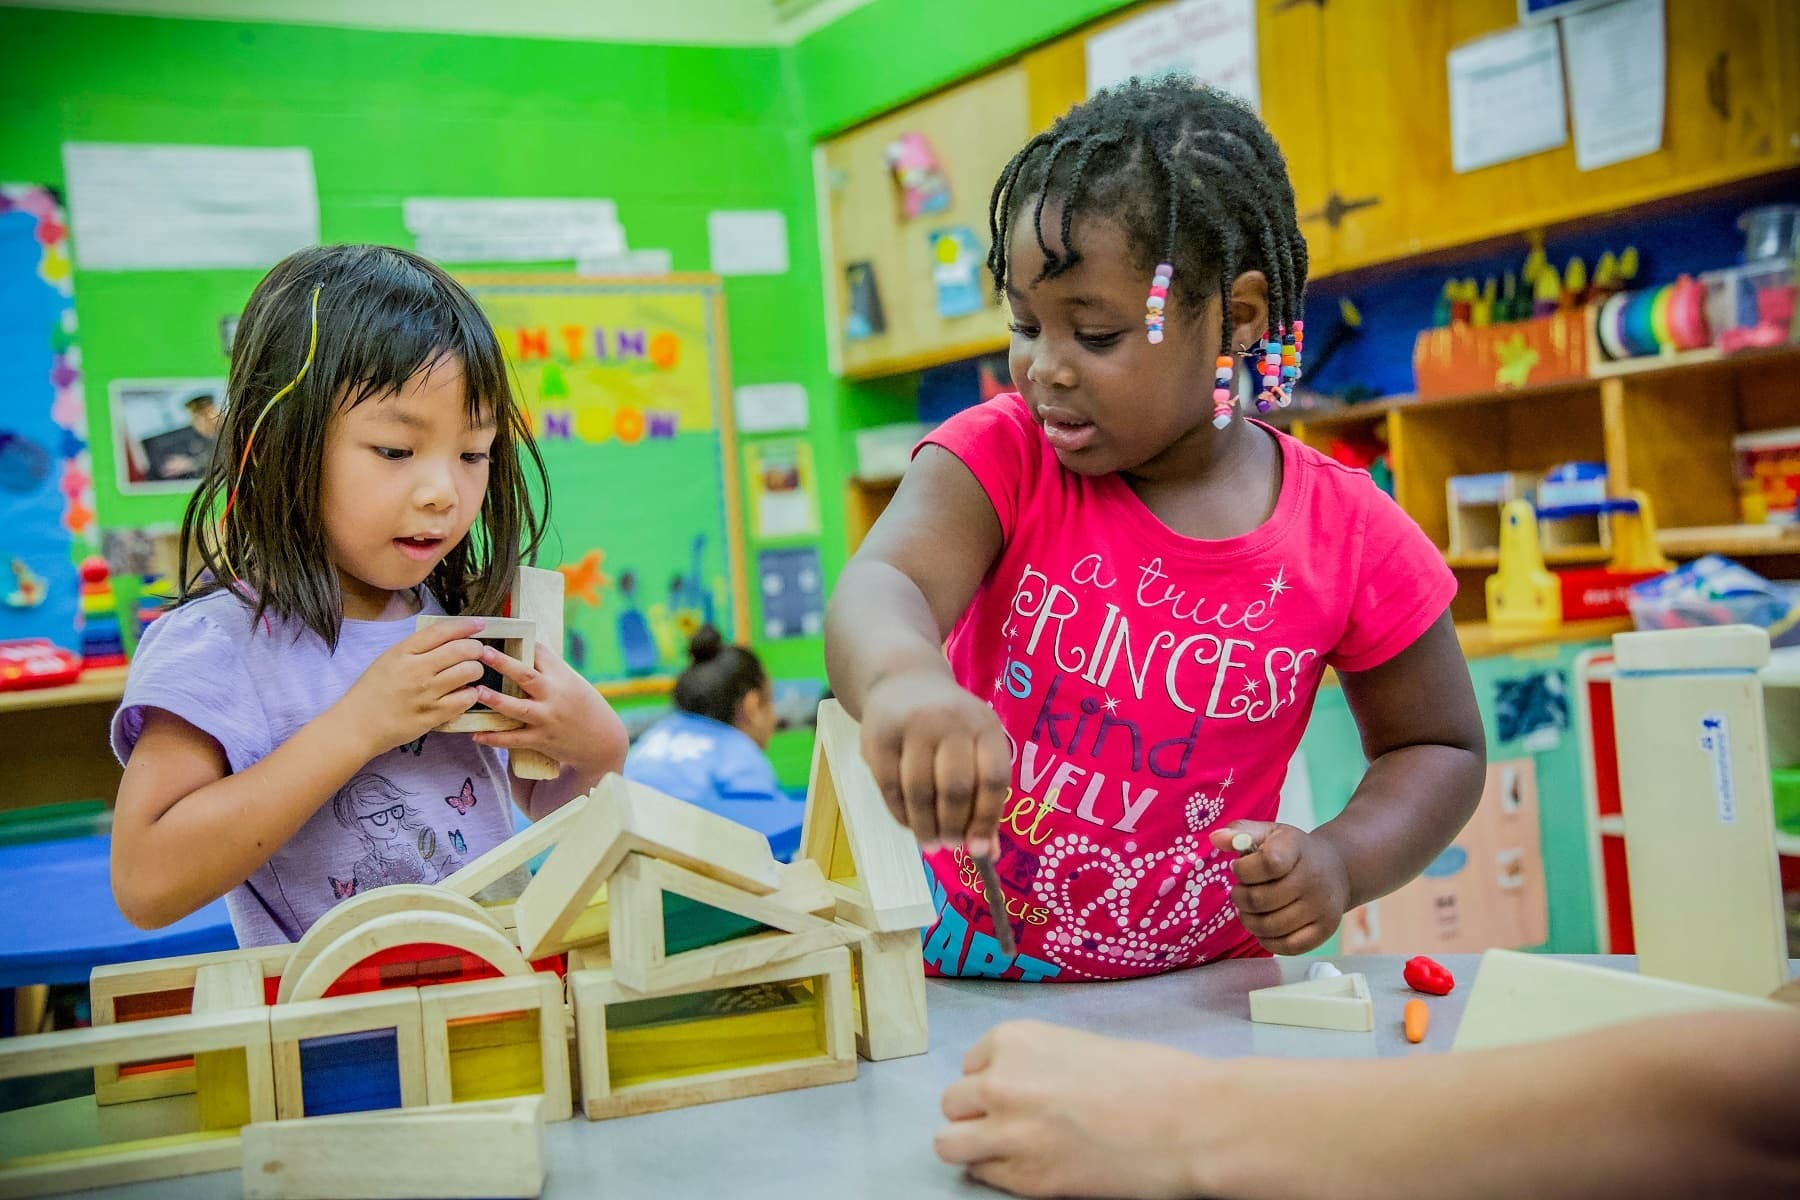 Young students play with blocks in a classroom.